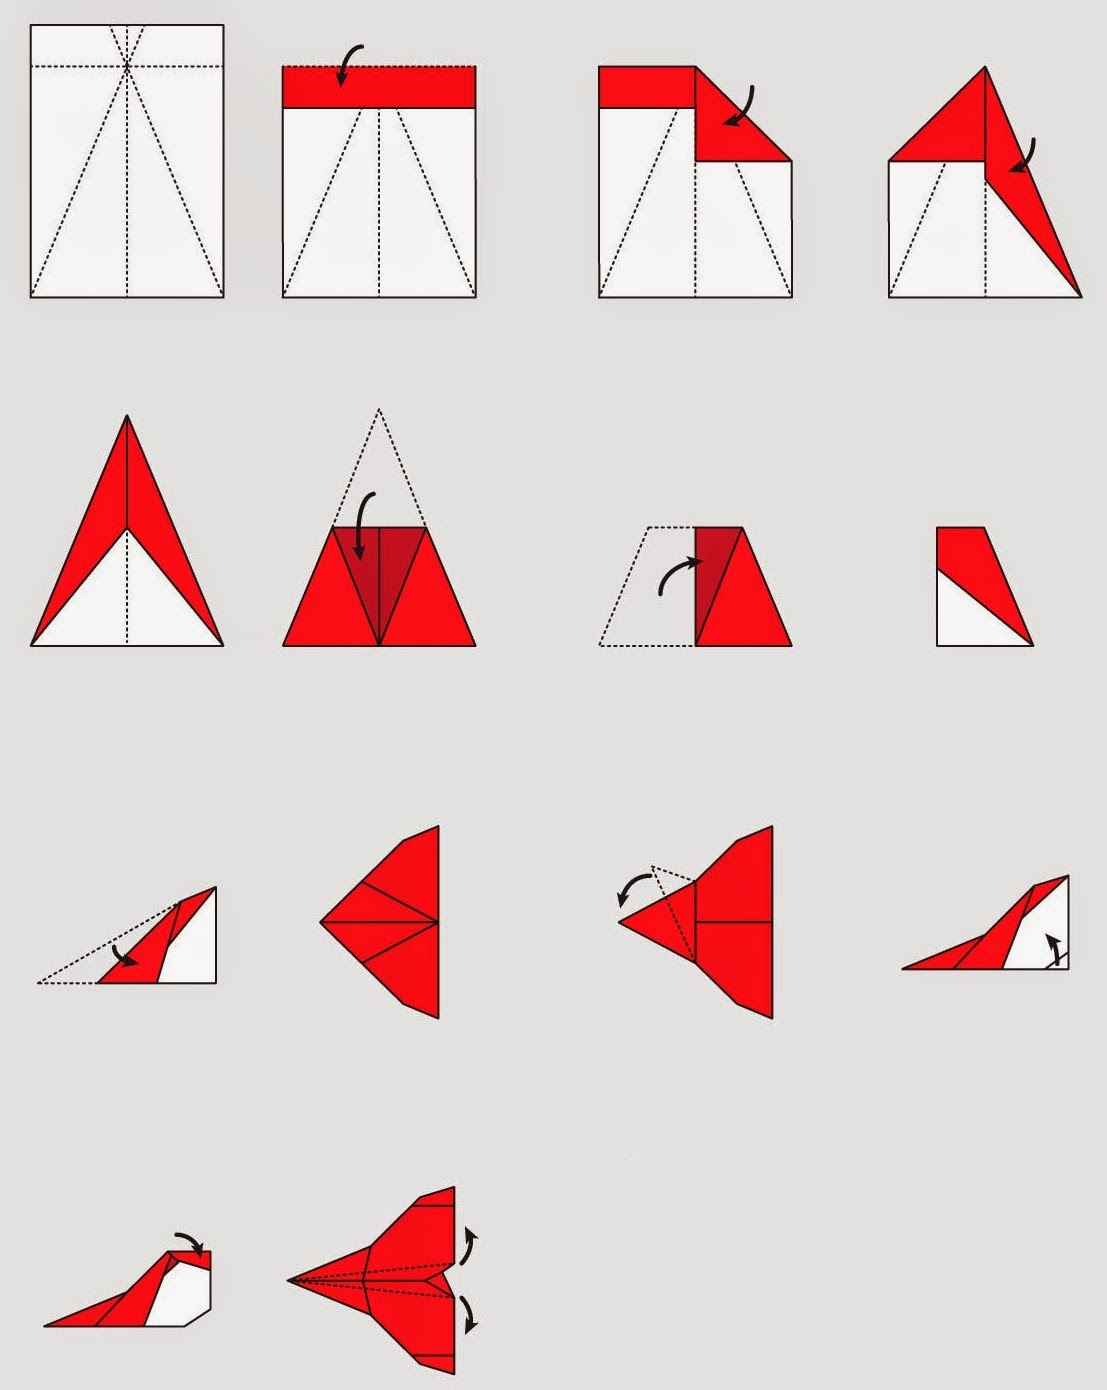 how to make origami planes step by step ~ origami ... - photo#22